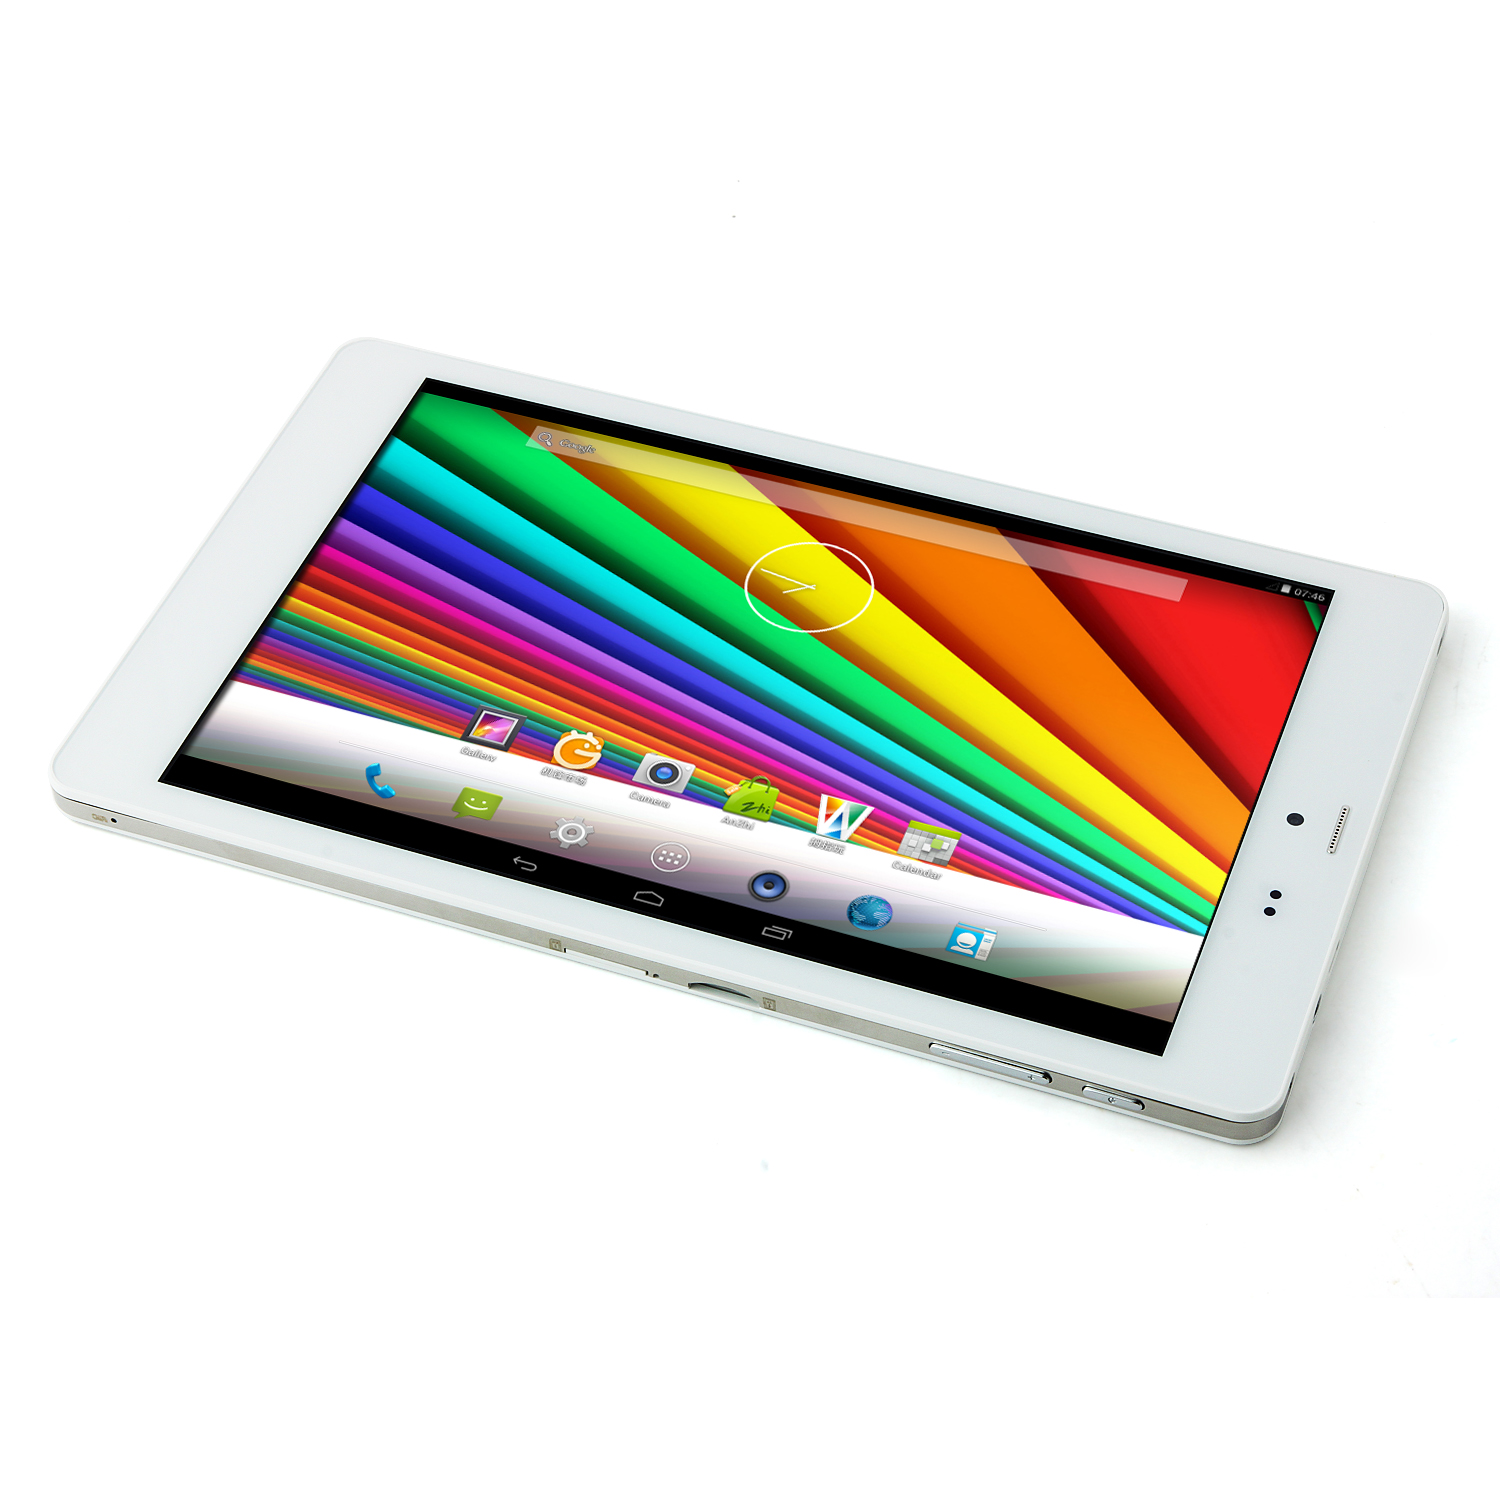 "CHUWI VX8 3G Tablet PC Intel Z3735G Android 4.4 8.0"" IPS Screen 16GB Ultra-Slim White"